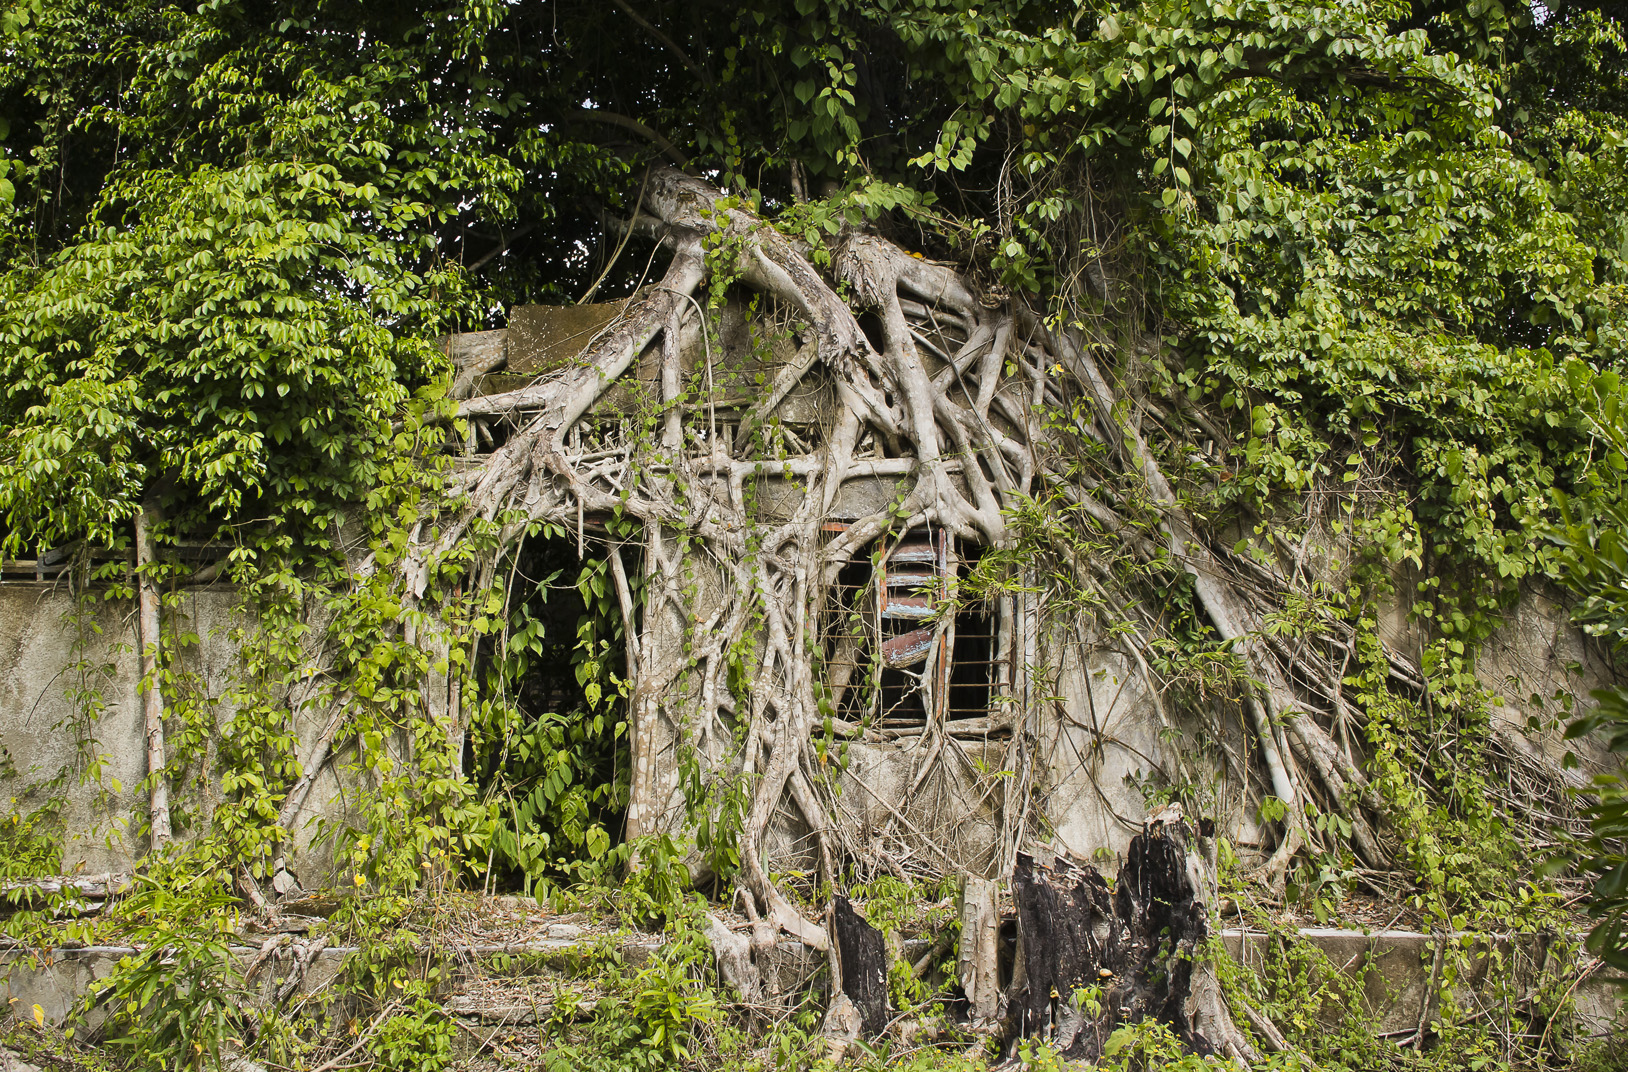 This photo represents the way nature is erasing traces of violence by taking over the physical remains of destroyed houses.